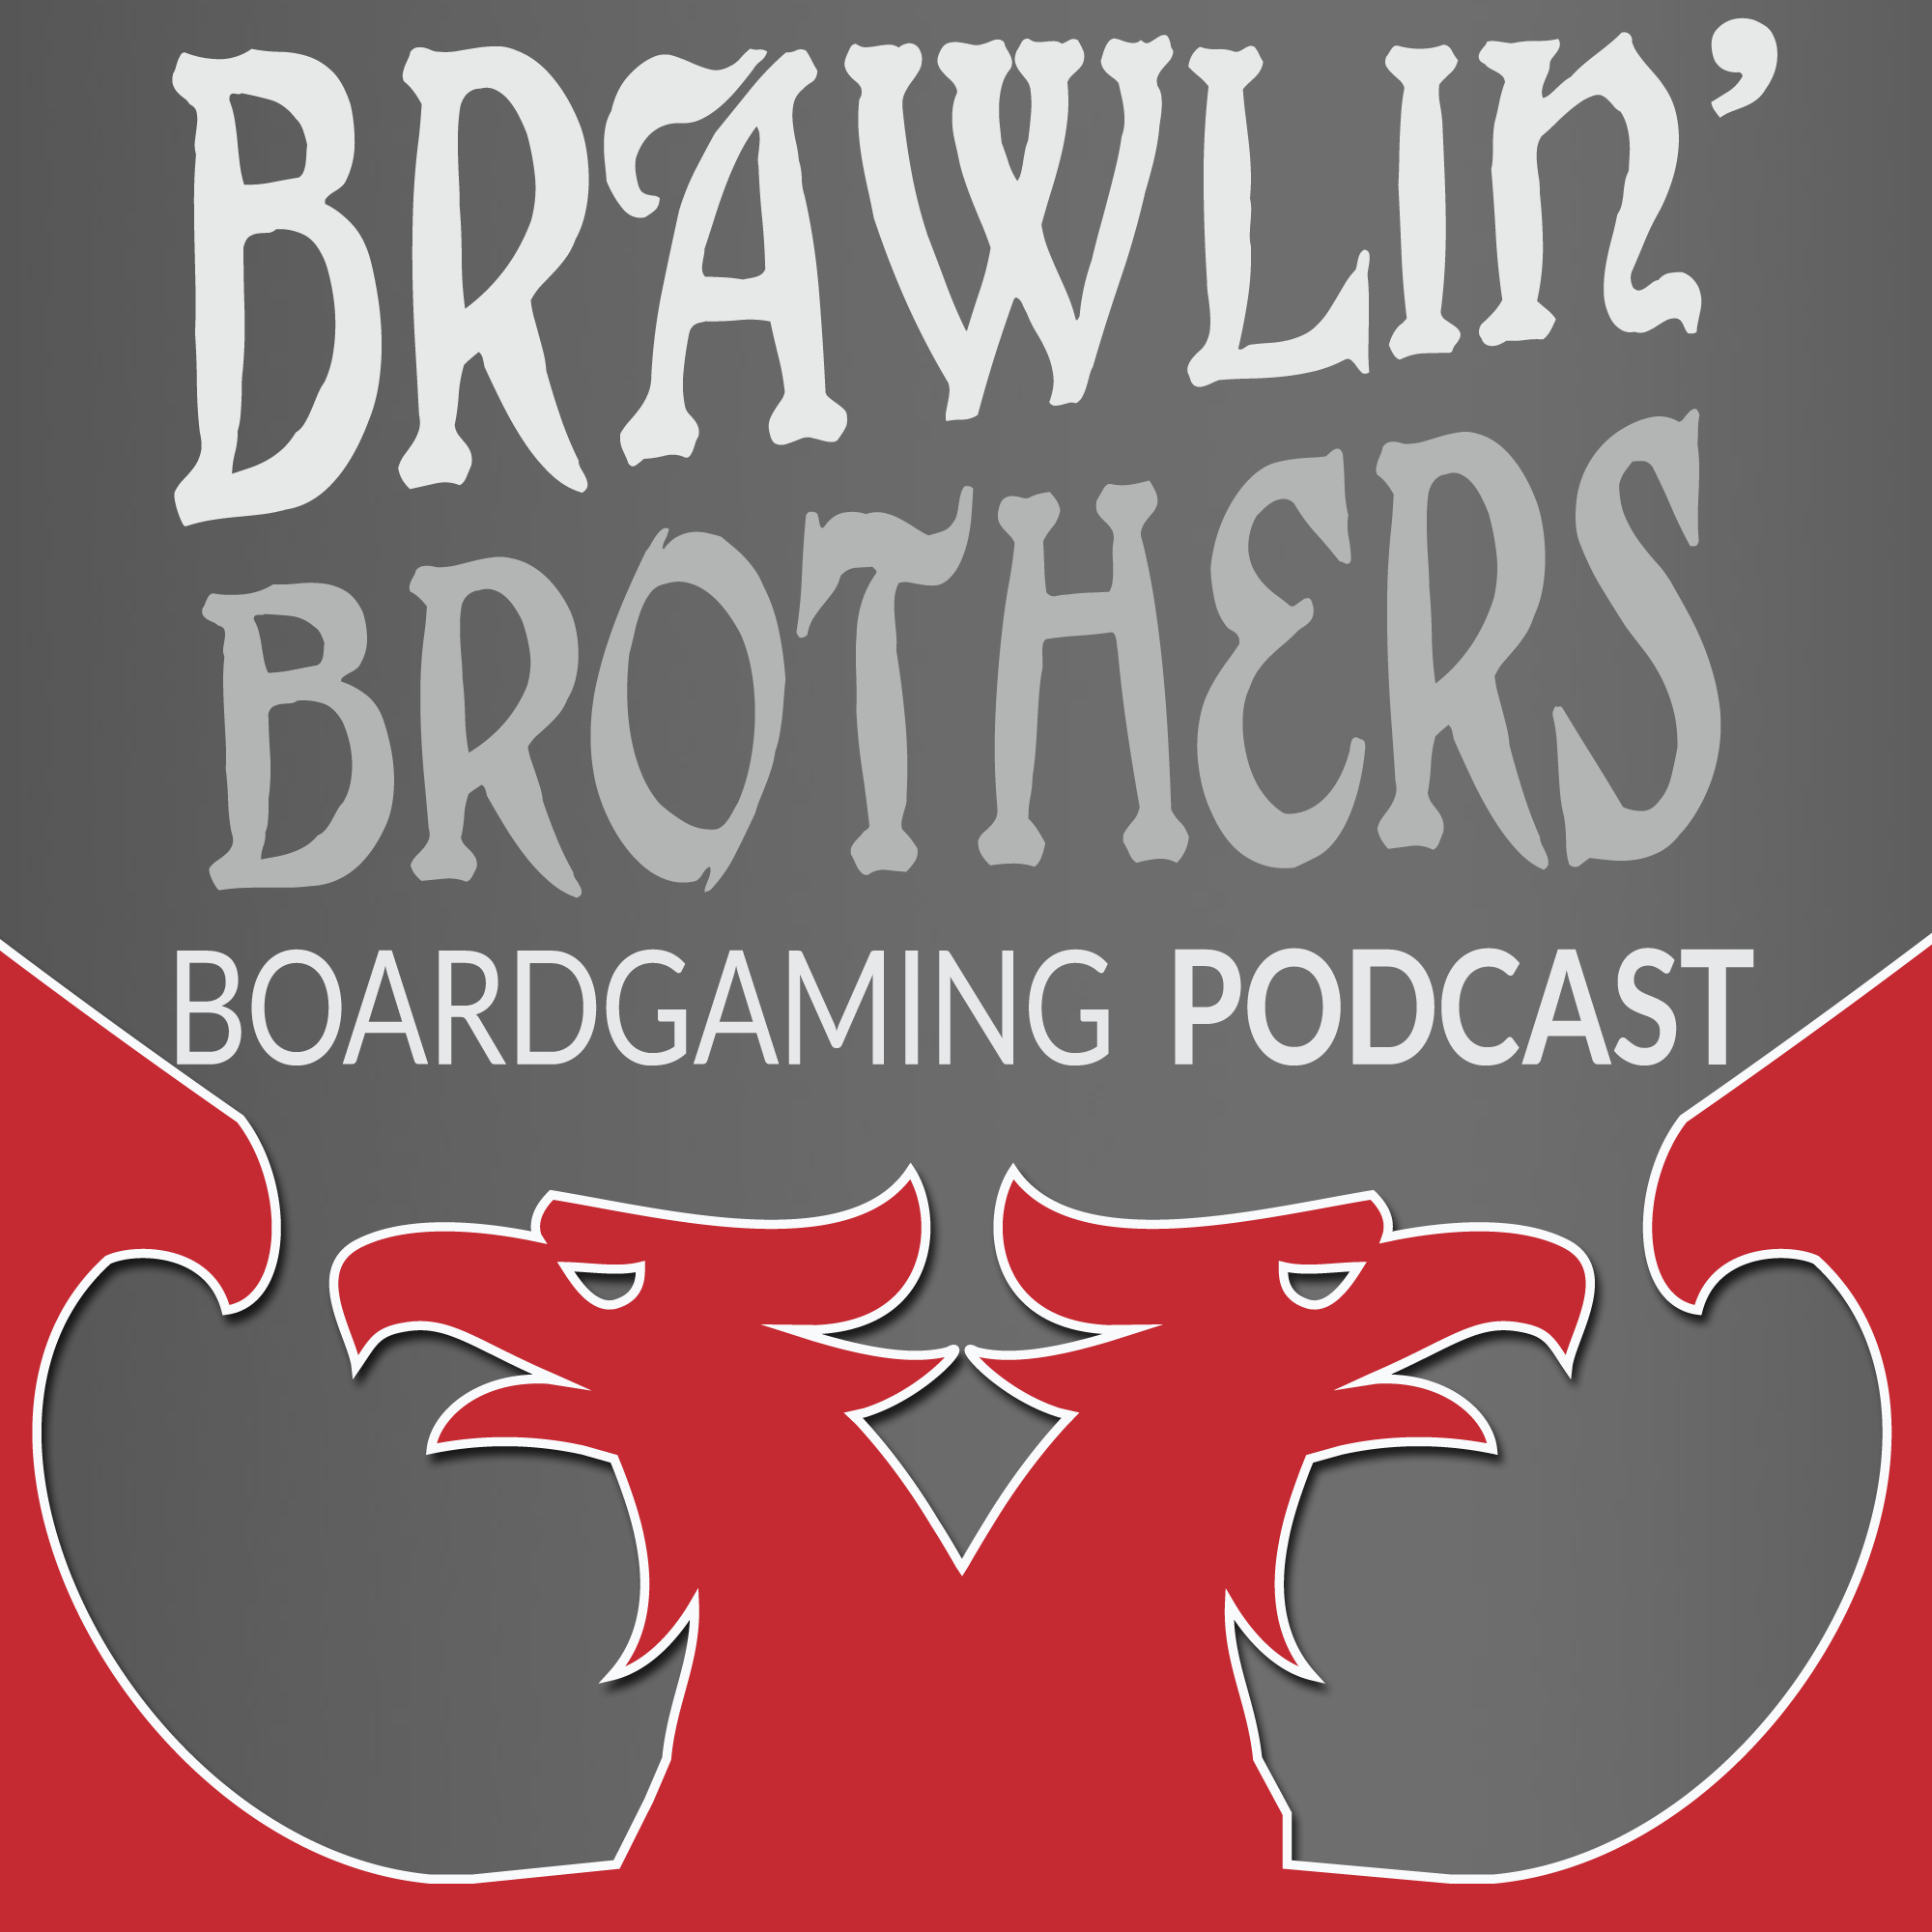 Brawling Brothers Boardgaming Podcast show art